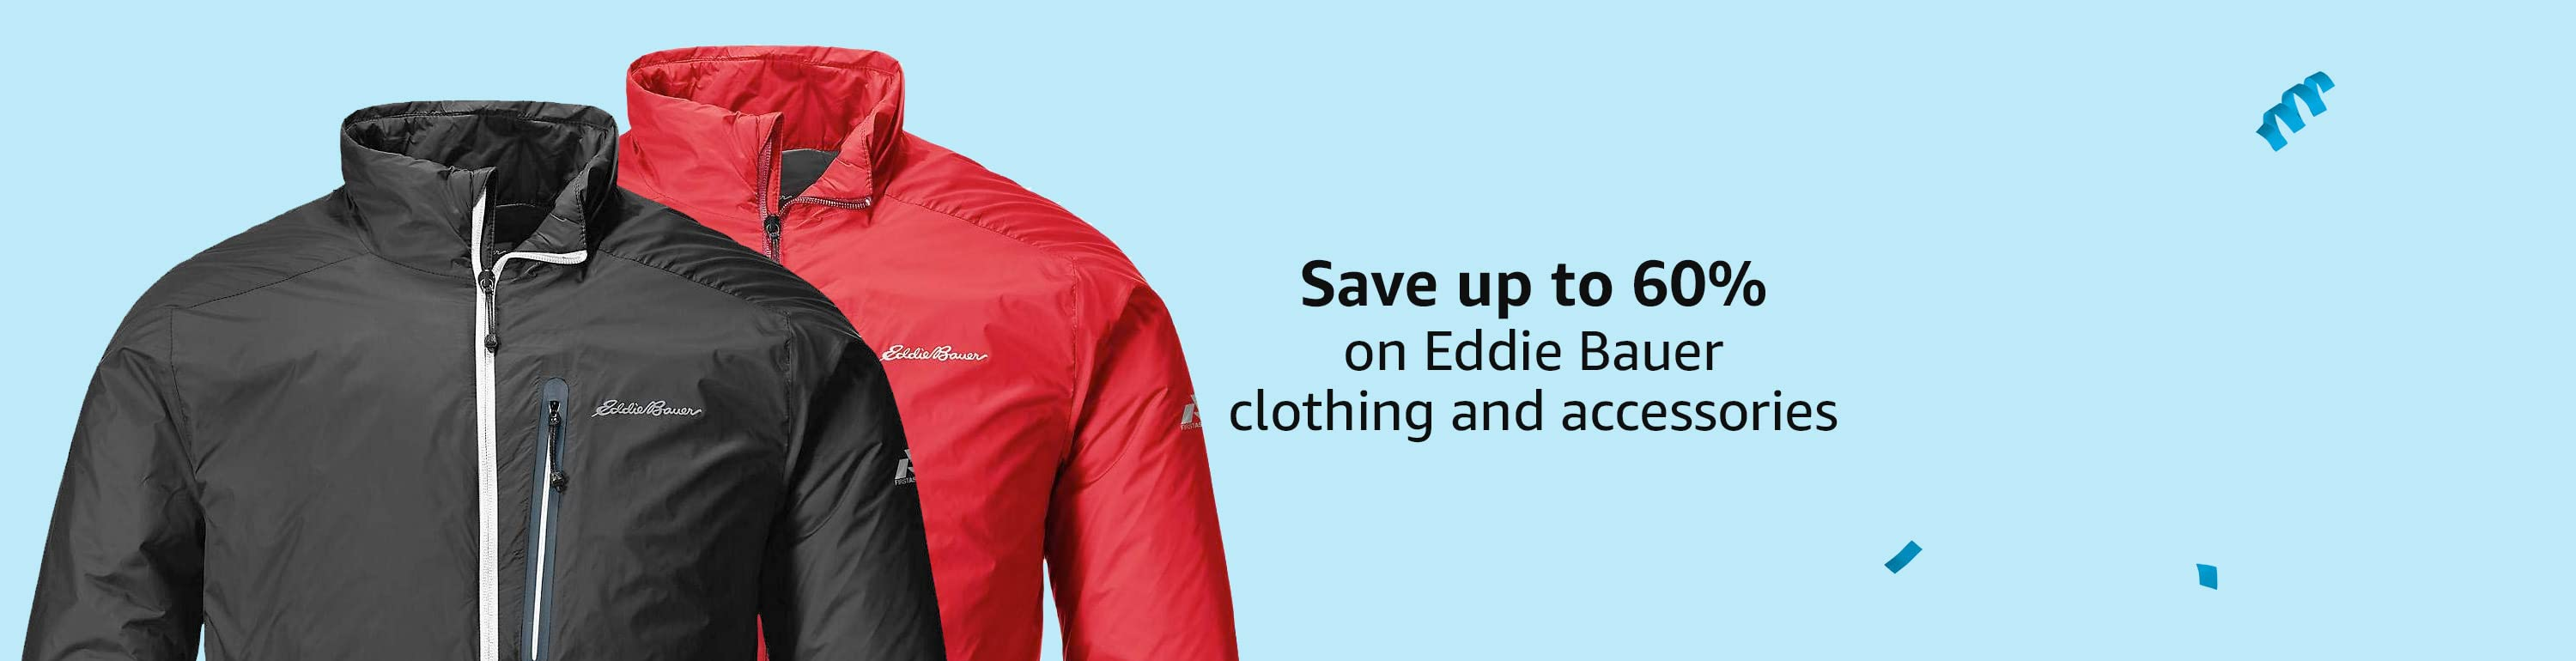 Save up to 60% on Eddie Bauer clothing and accessories